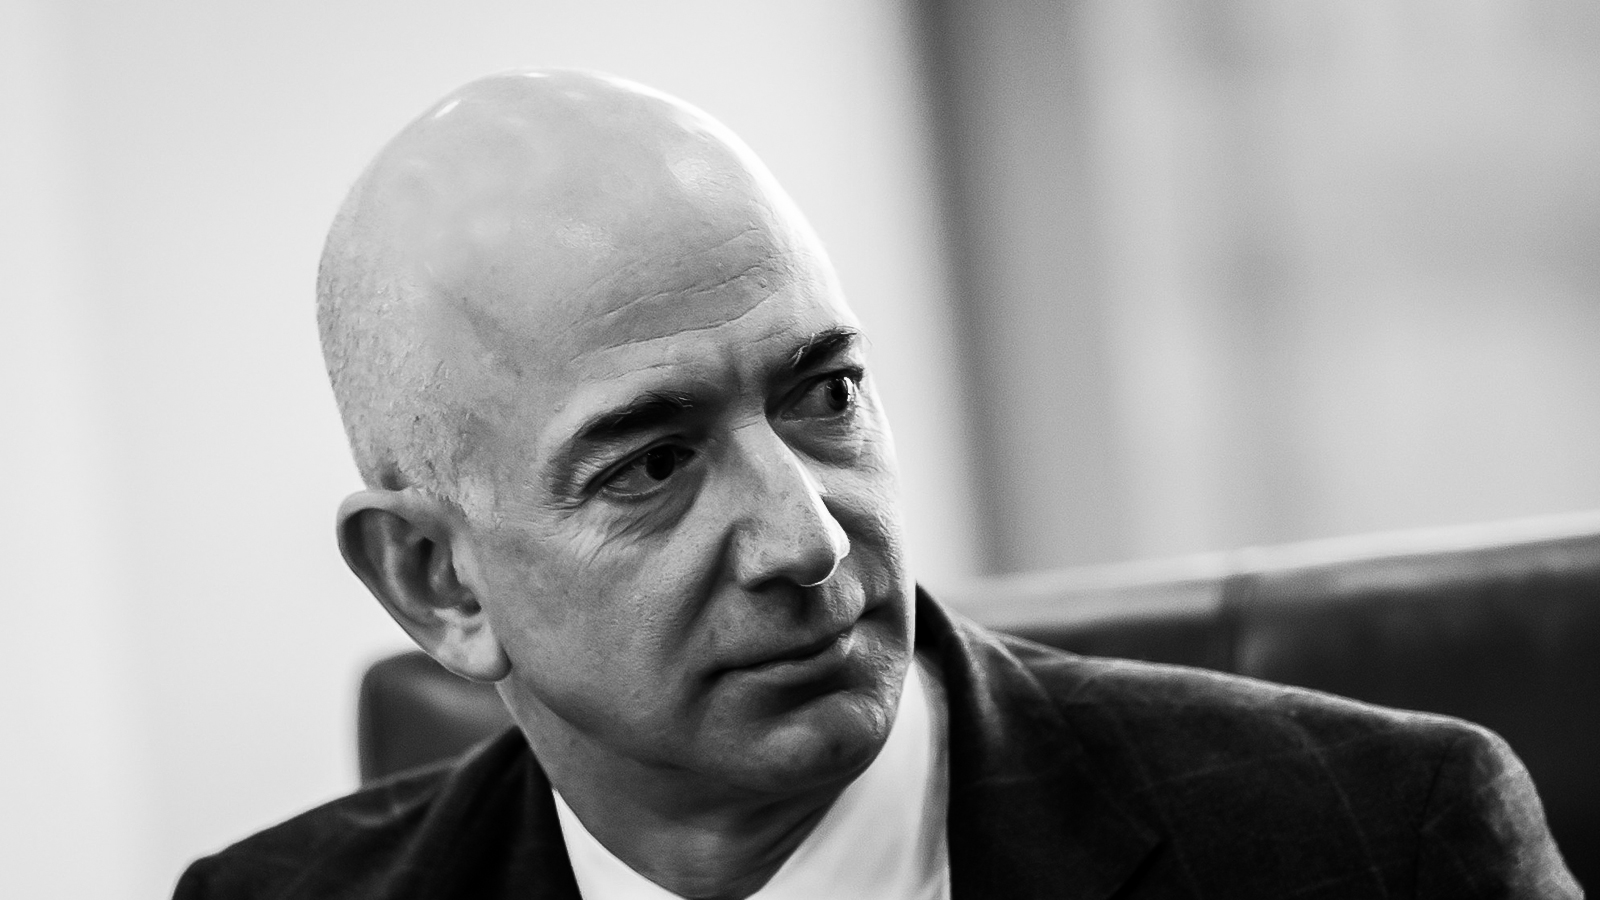 Jeff Bezos told Amazon execs to consider these 3 questions before offering someone a job